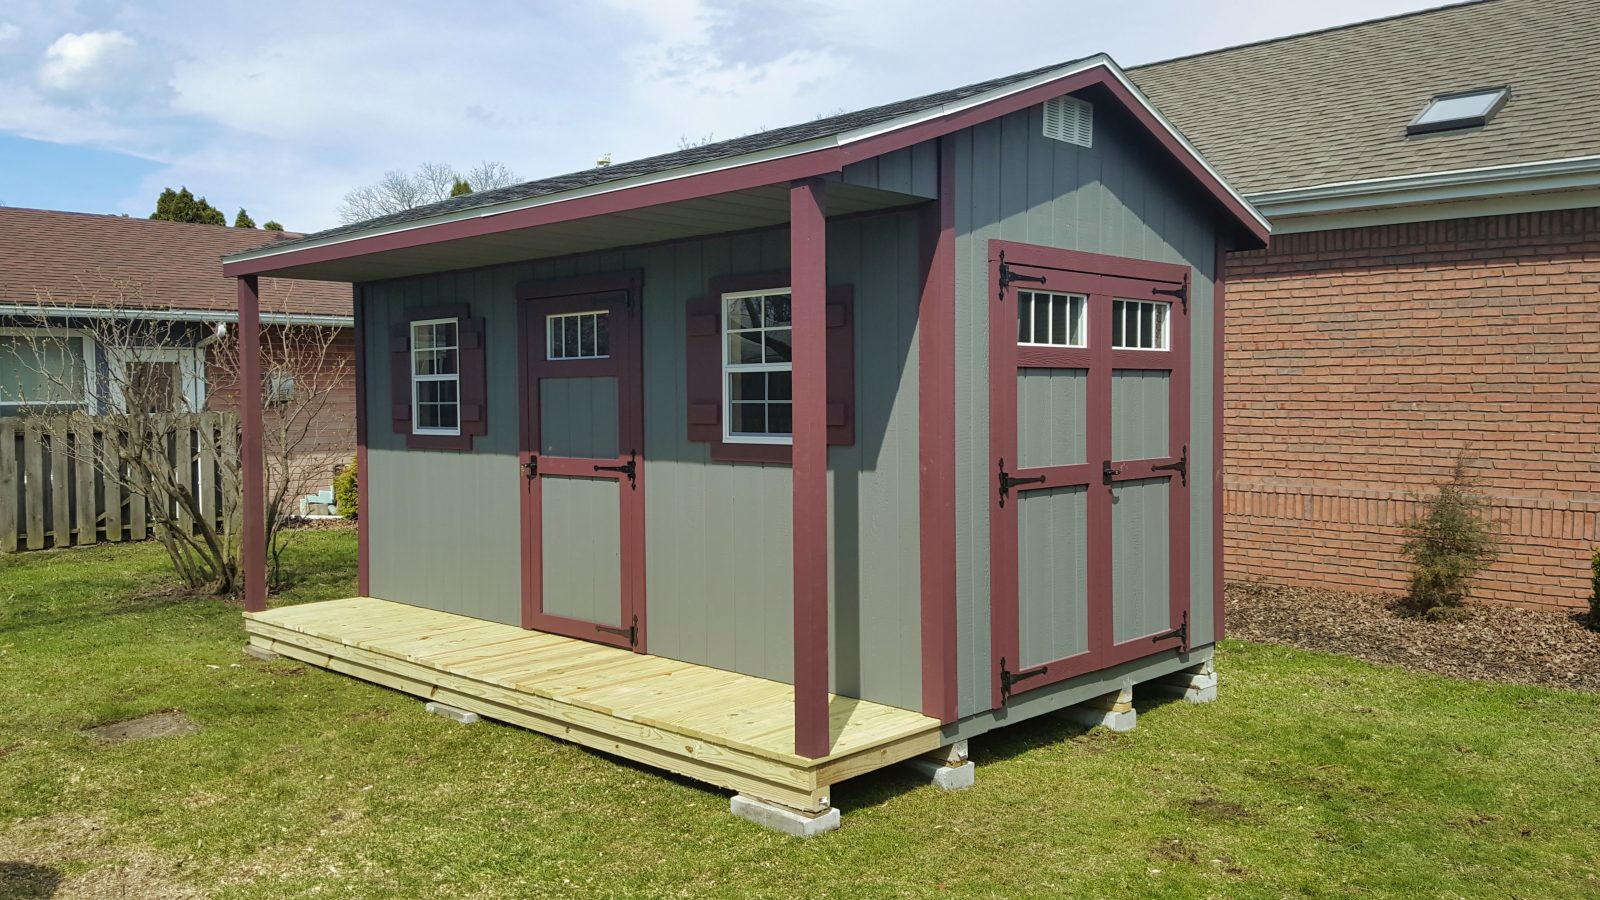 Cabin Sheds For Sale In Central Ohio [2019 Model] | Beachy Barns